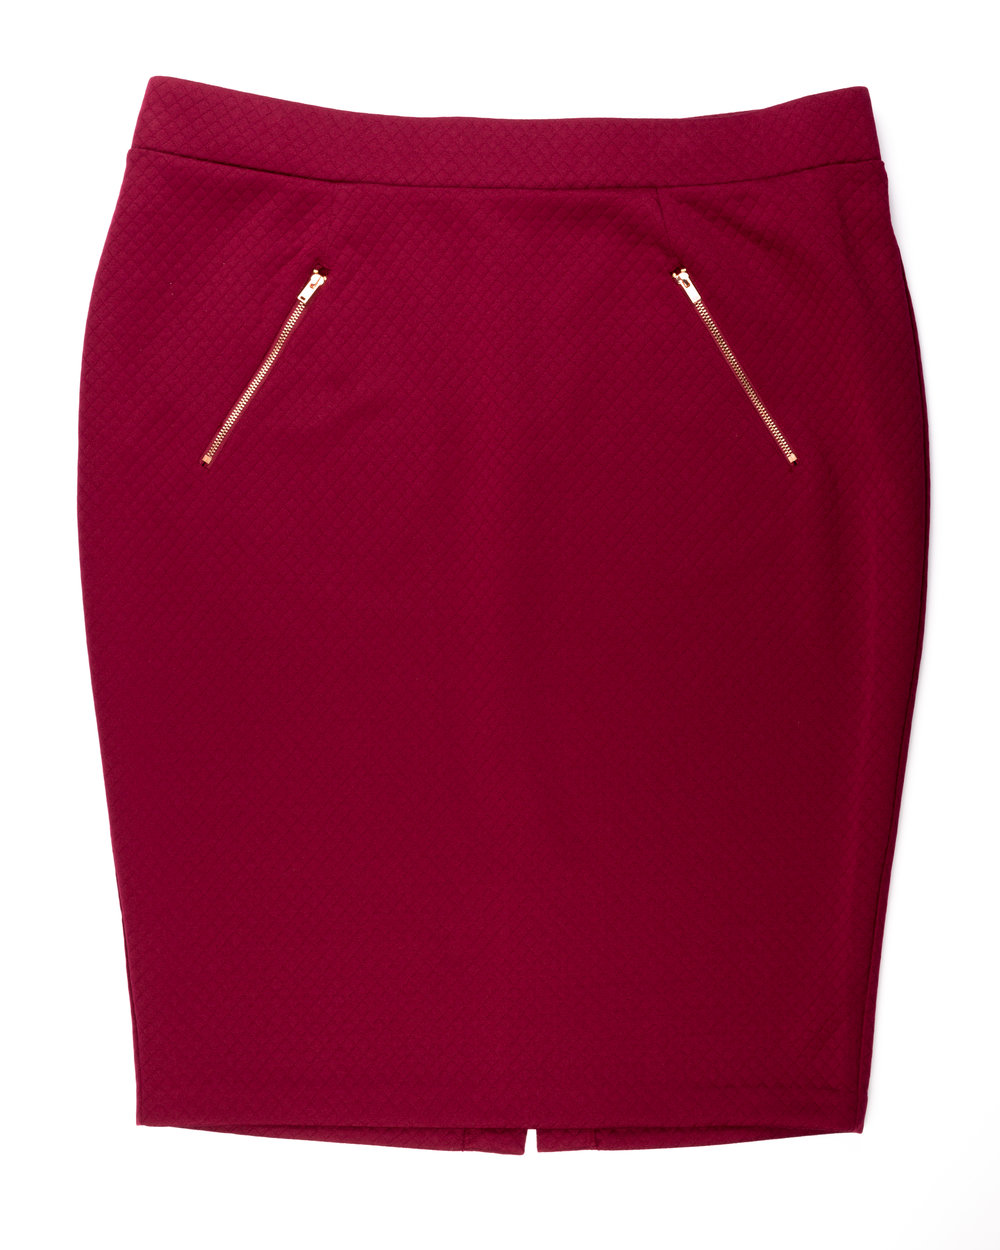 Black Cherry Skirt.jpg